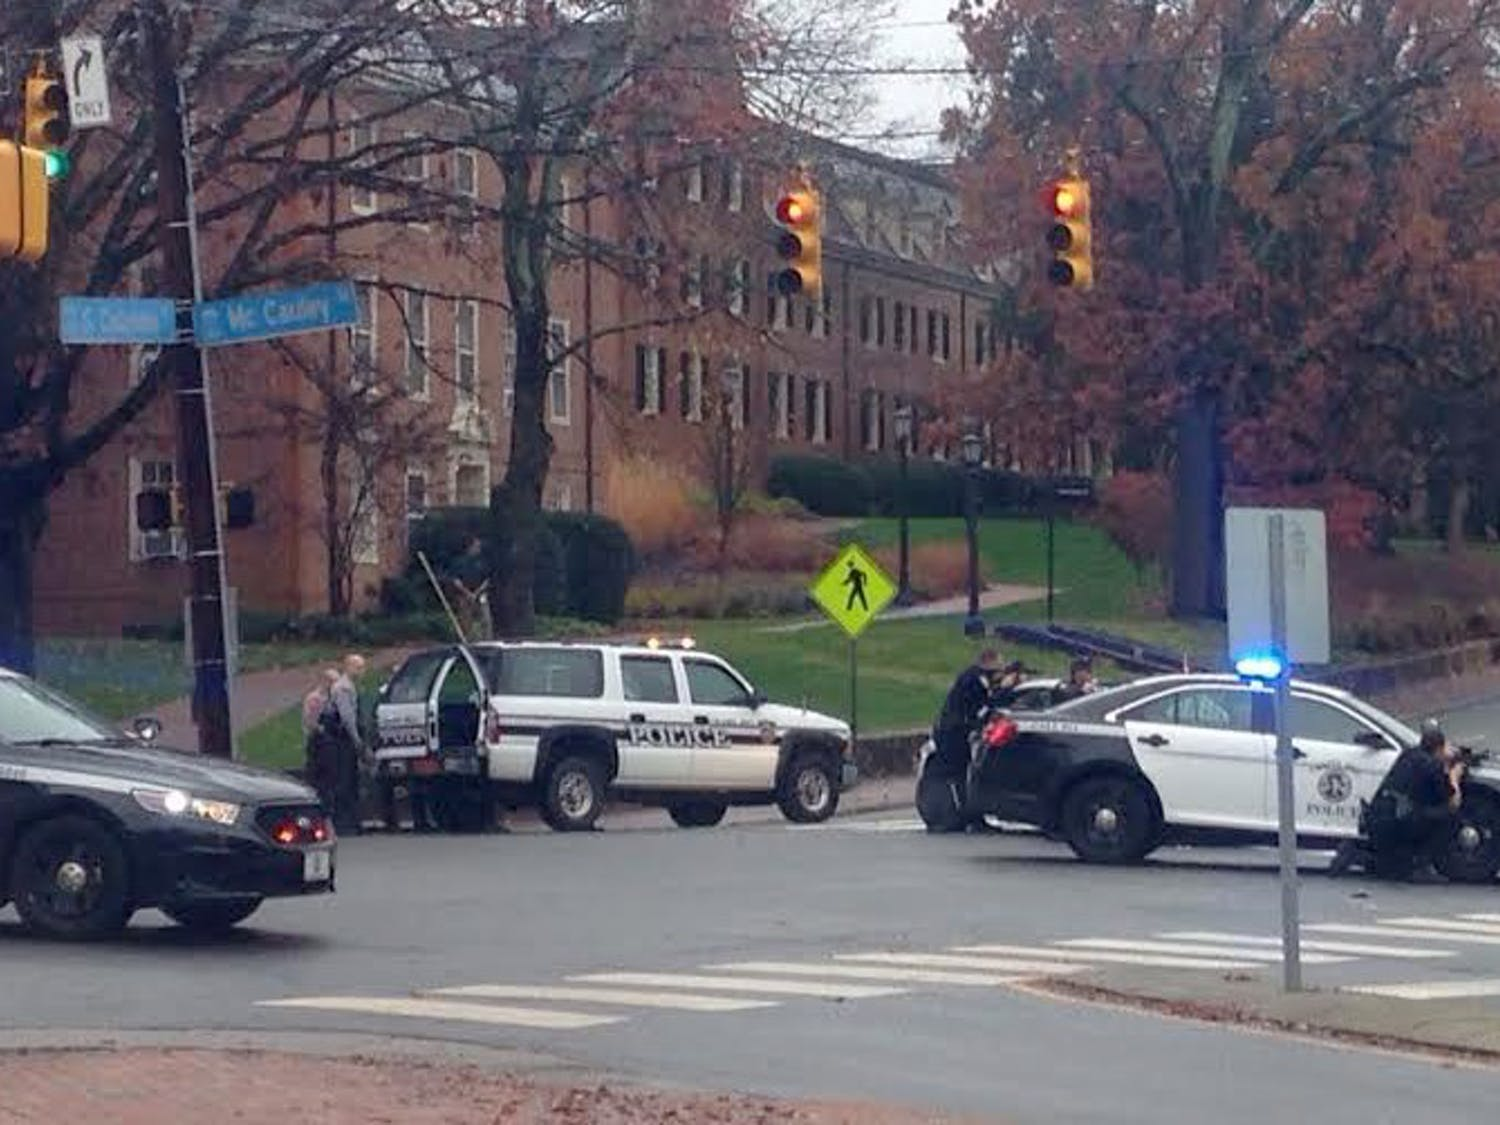 UNC police gather on campus in response to an anonymous 911 phone call at 8:22 on Dec. 2. in 2016